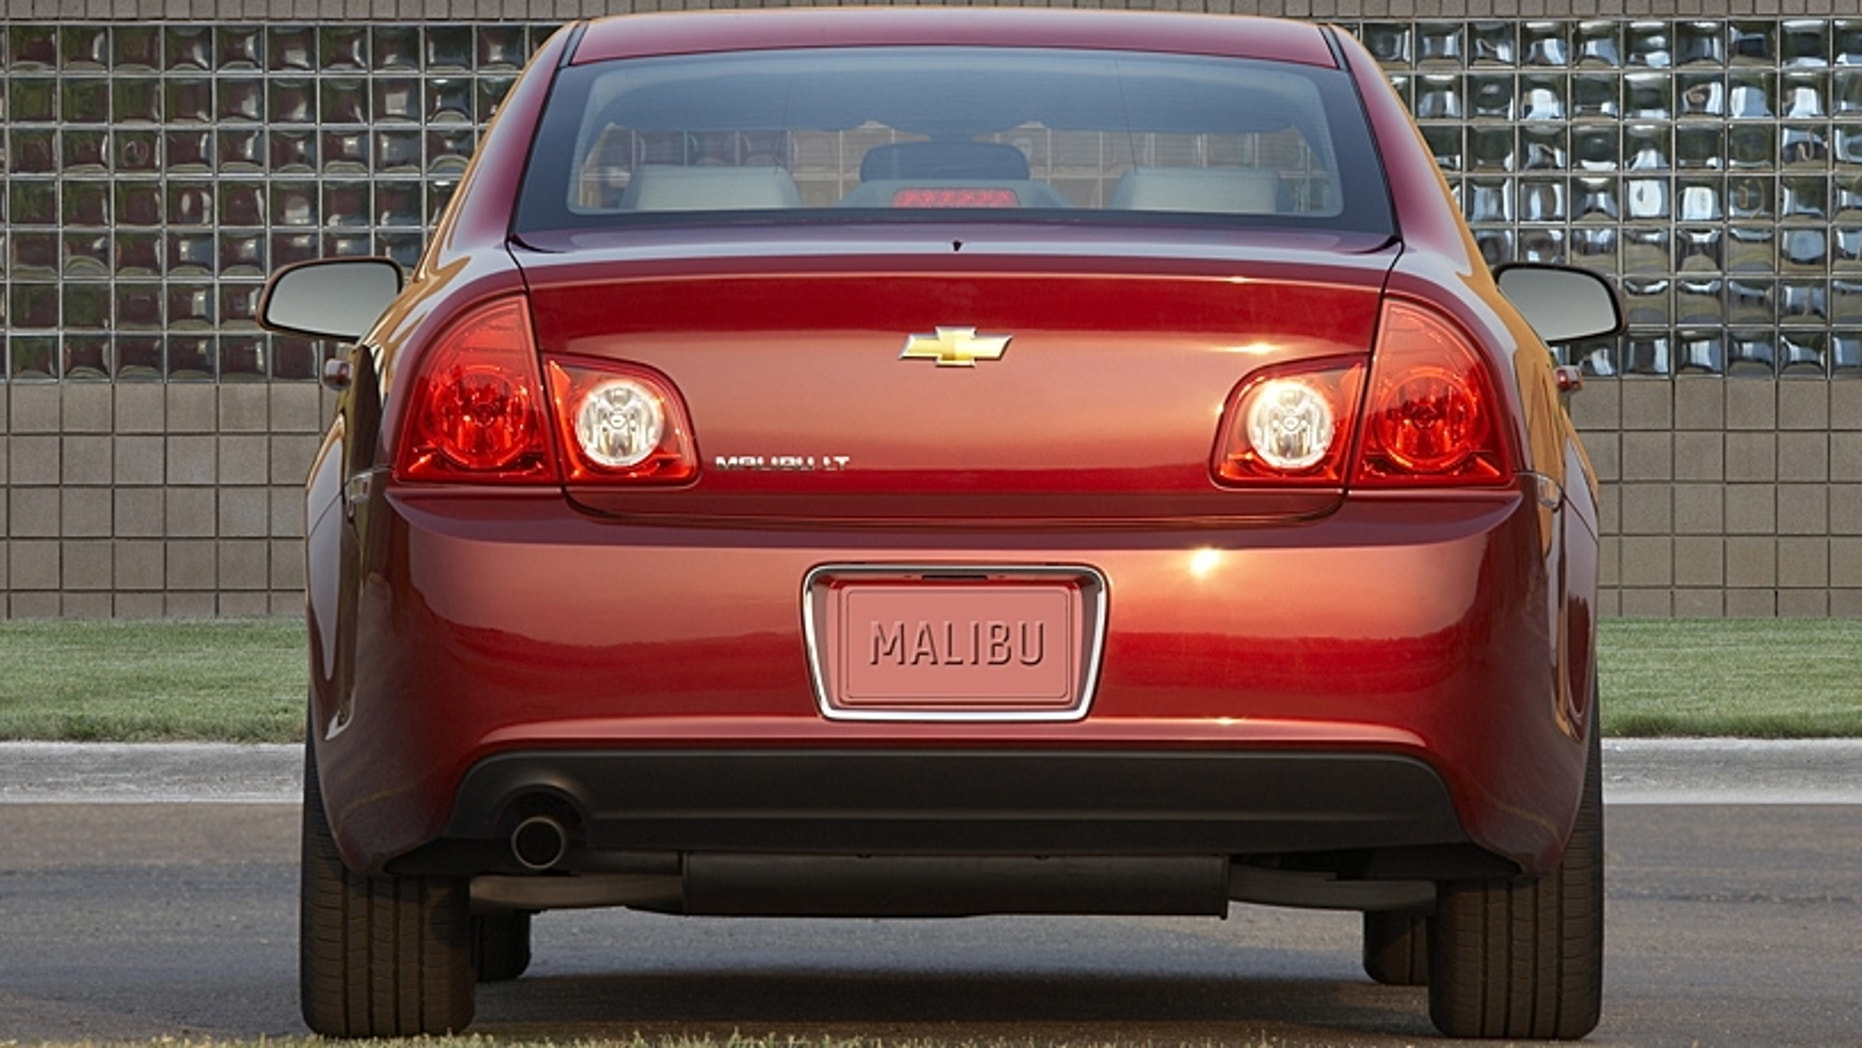 Bad Brake Lights Could Force Recall Of Over One Million Gm Cars 2011 Chevy Malibu Lt Chevrolet X11ch Ma008 06 22 2010 United States